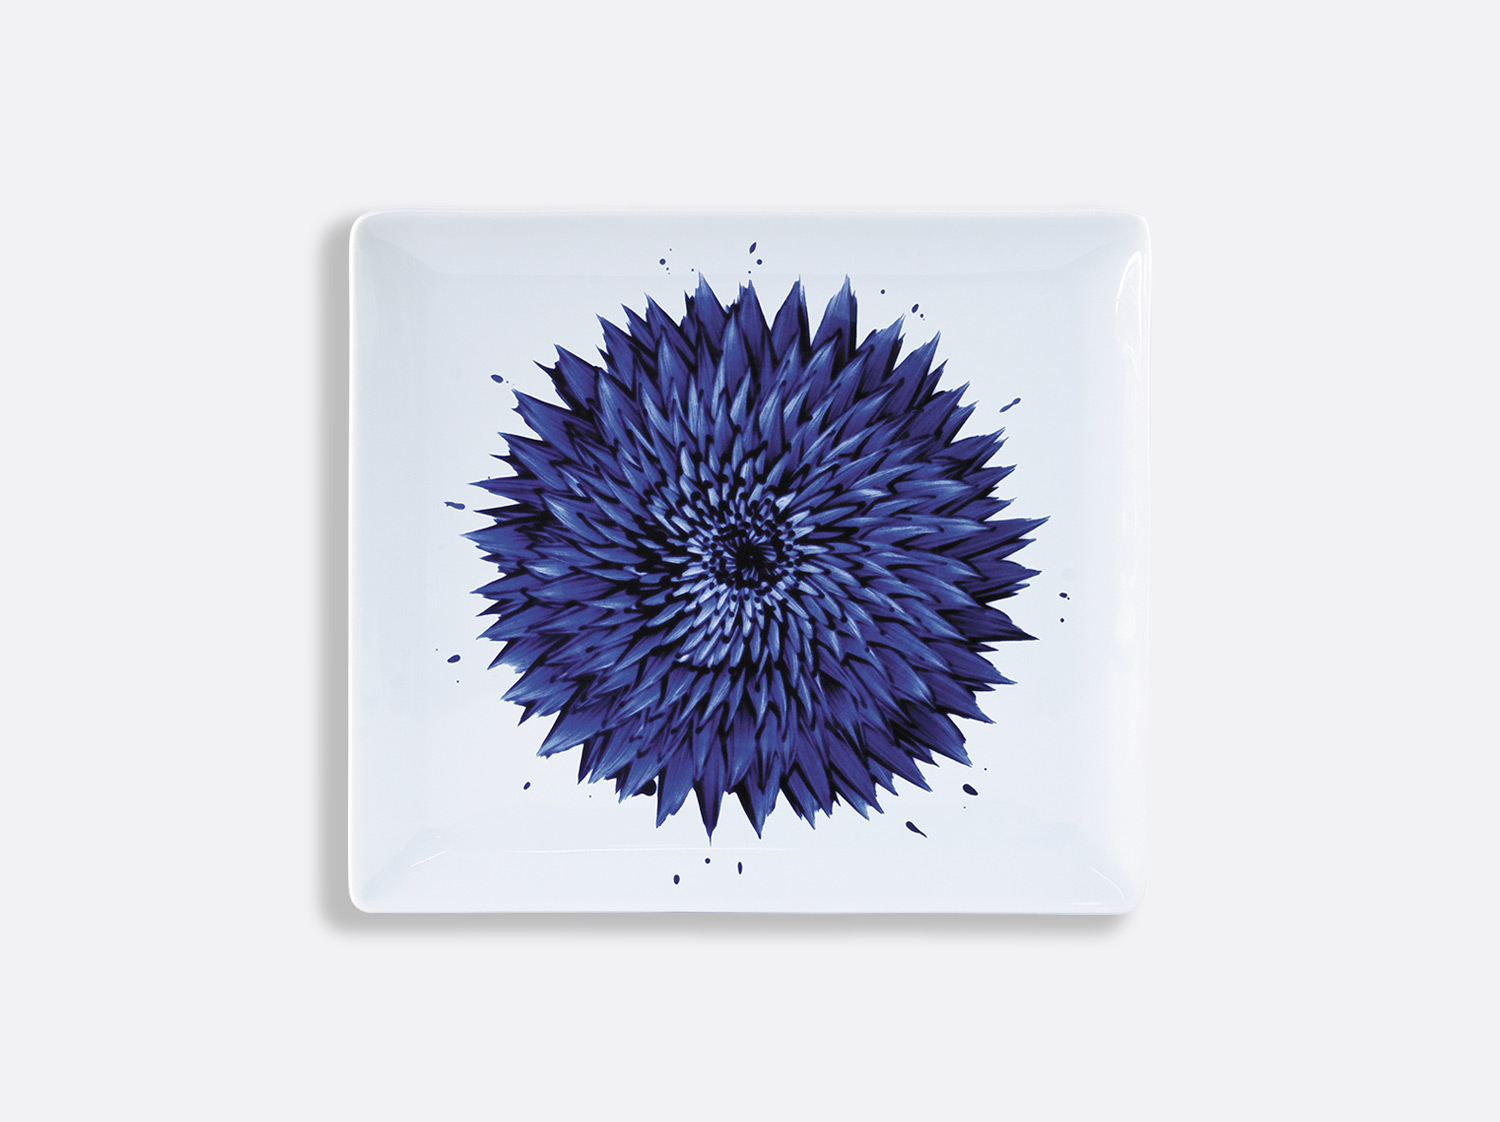 Plateau rectangulaire 22 x 19,5 cm en porcelaine de la collection IN BLOOM - Zemer Peled Bernardaud